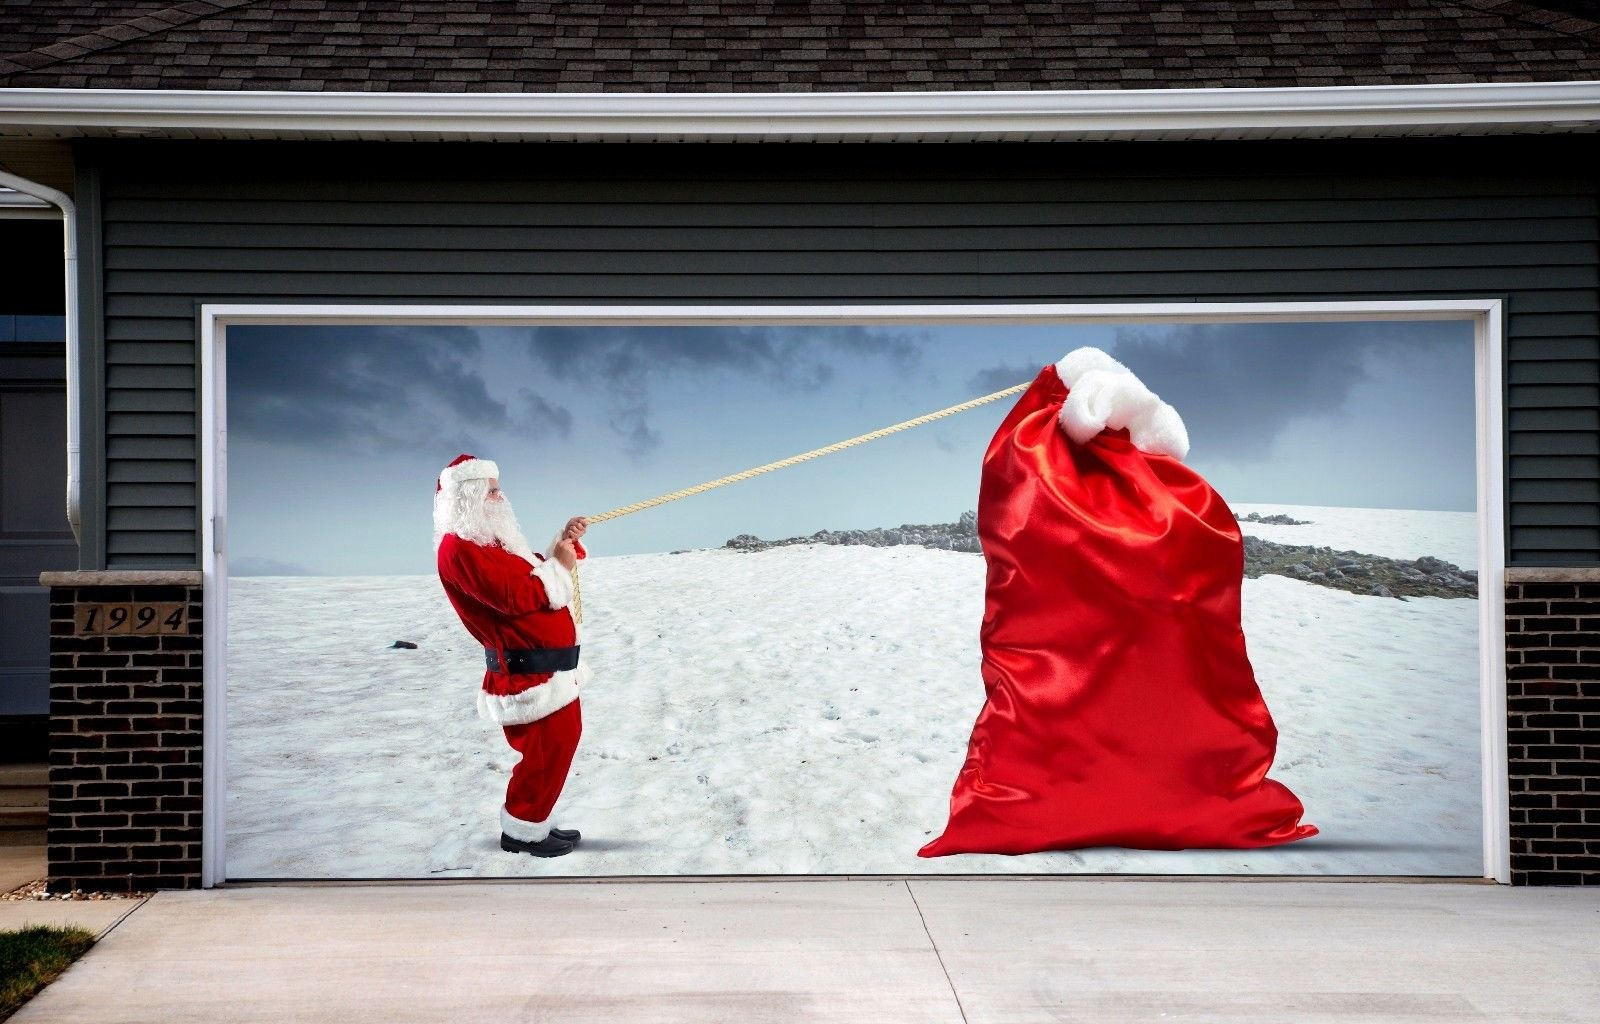 Christmas Garage Door Covers Banners Outdoor Holiday Full Color Santa Claus SPECIAL EXTERNAL USE MATERIAL REUSABLE Decorations Billboard for 2 Car Garage Door Art Murals size 82x188 inches DAV111 by WallTattooHome